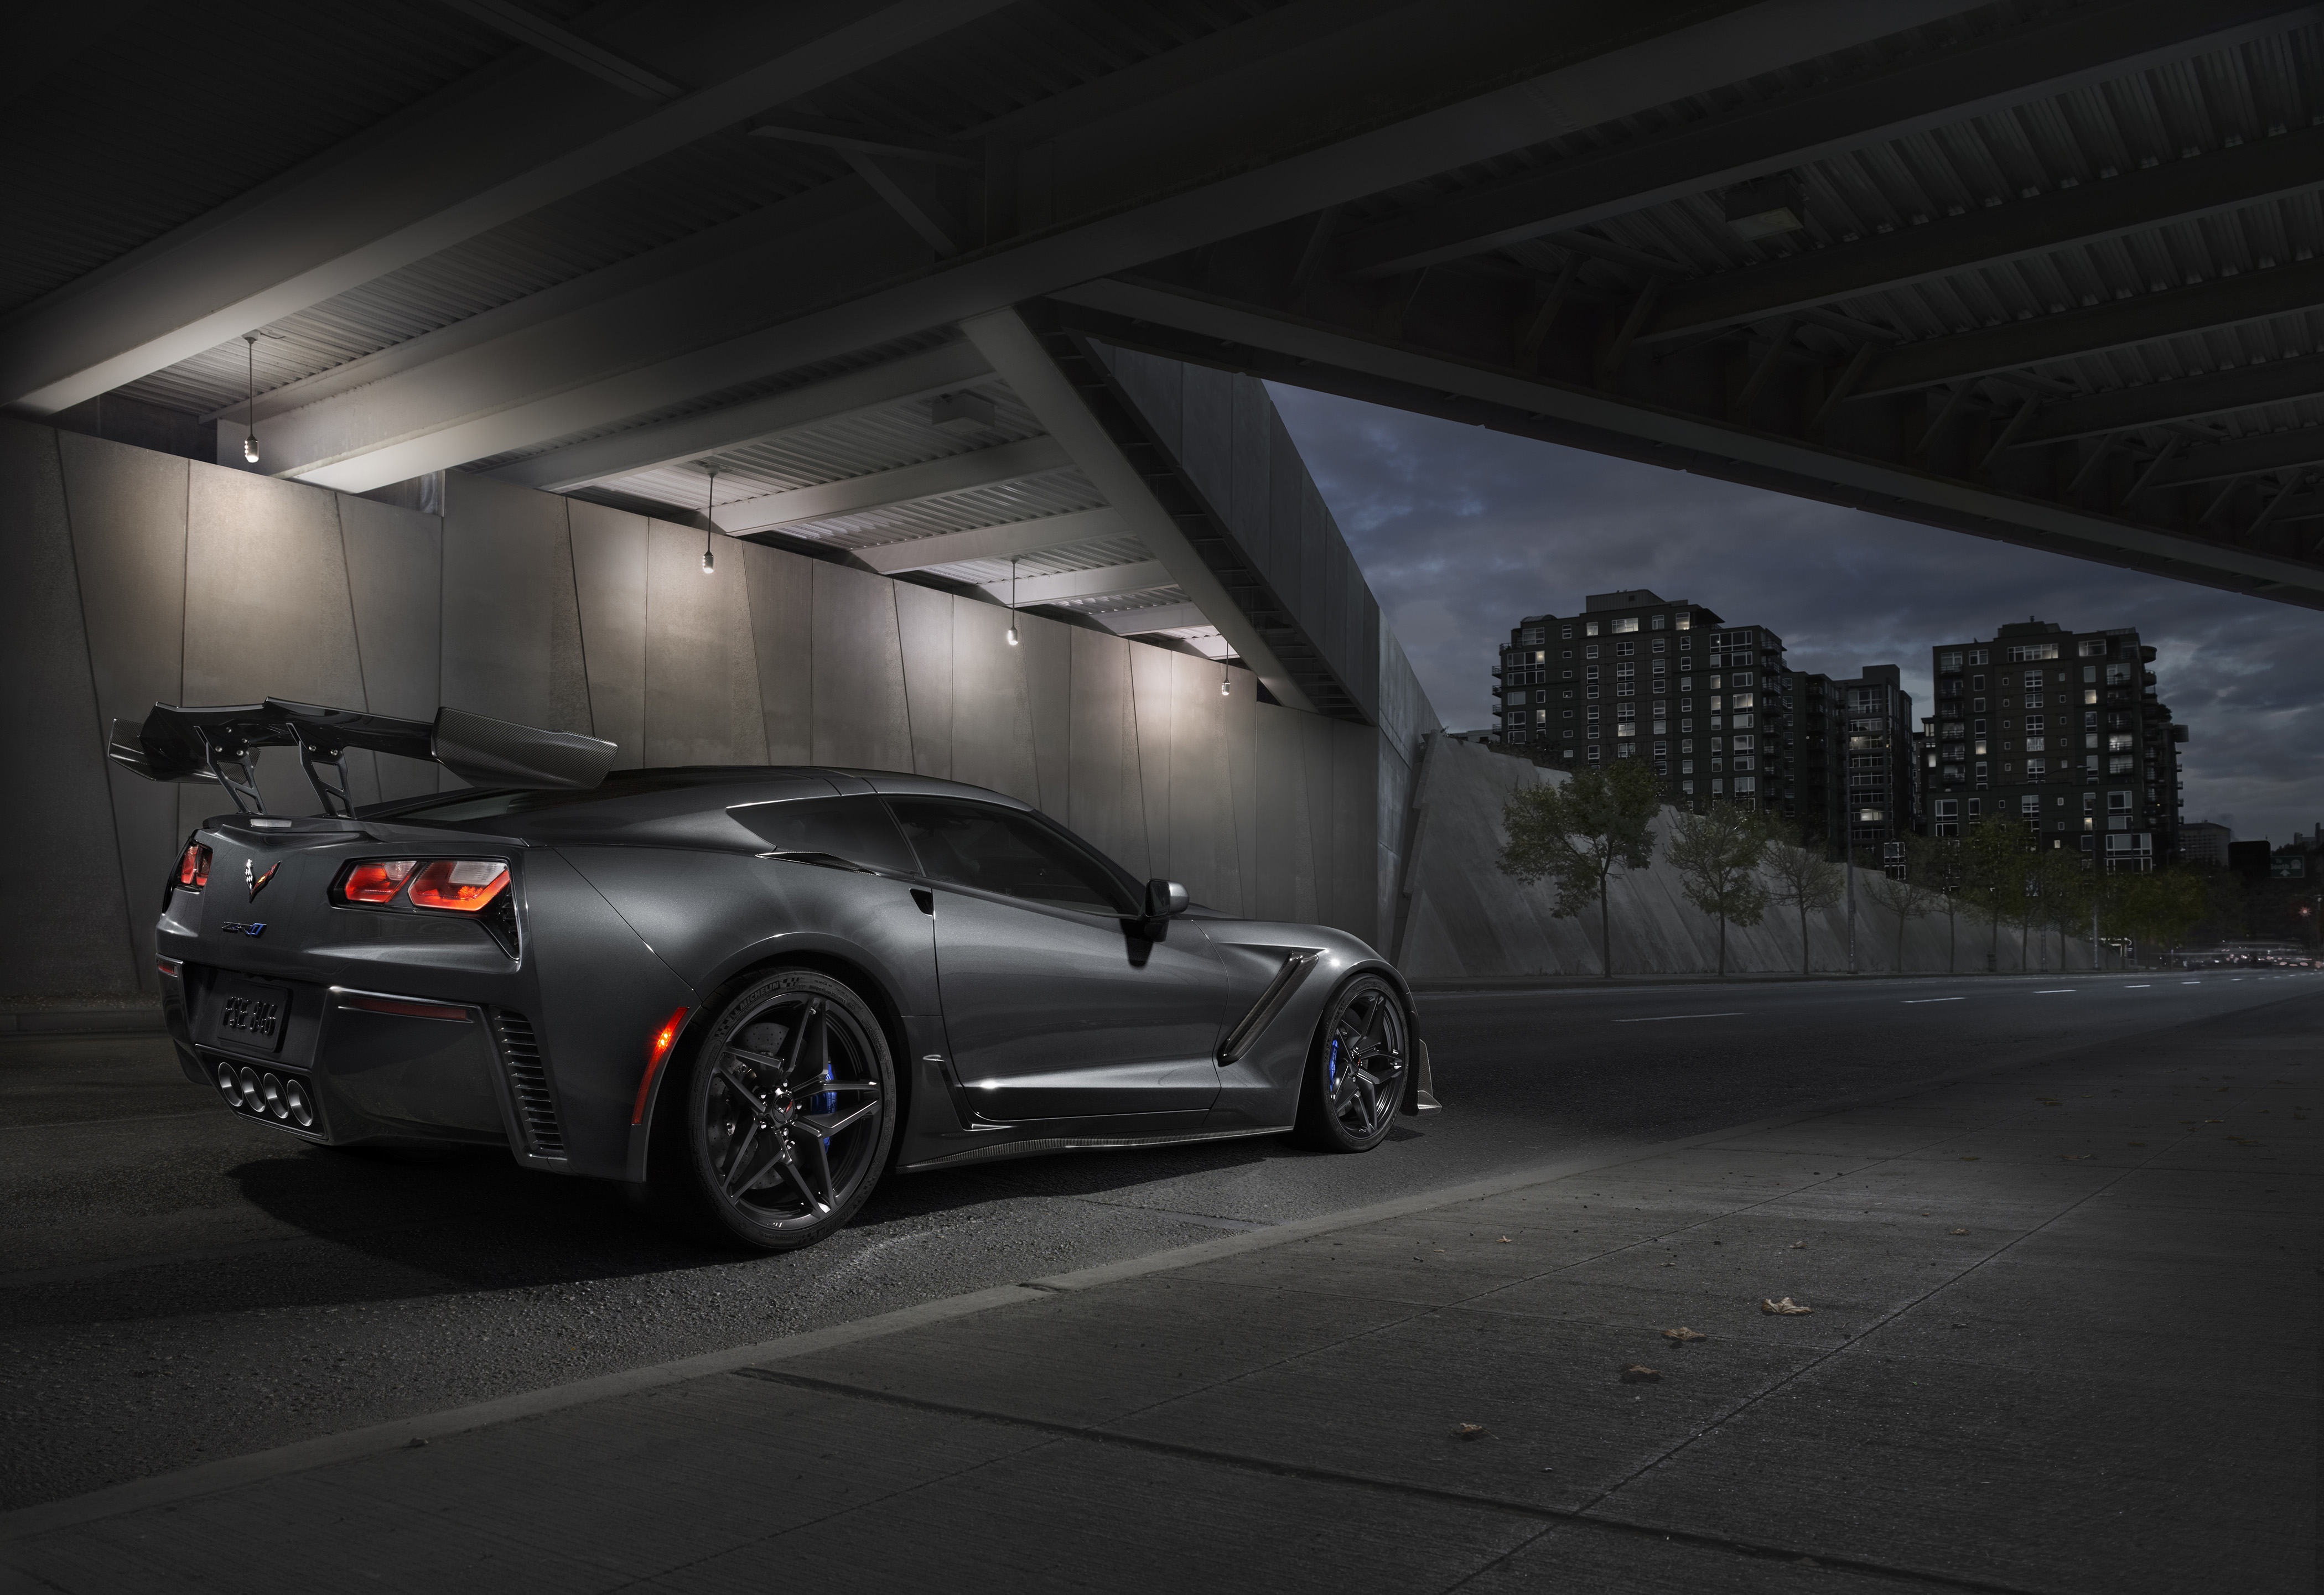 ... Click To Enlarge Image 2019 Chevrolet Corvette ZR1 004 ...